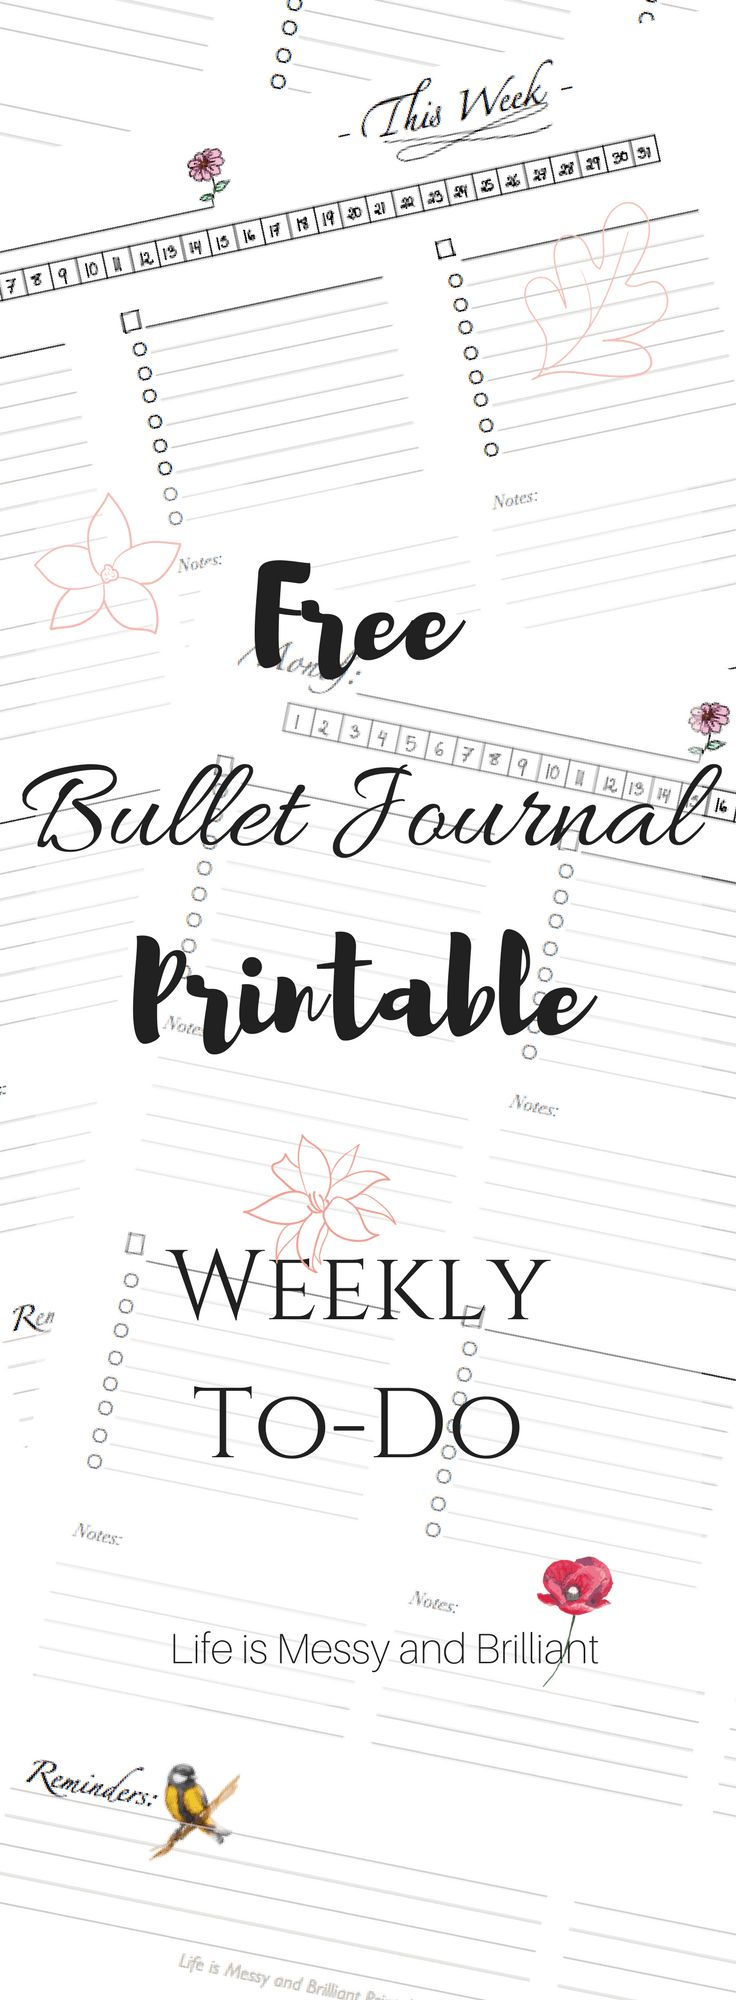 Free bullet journal printables, free printable, bullet journal, free lettering printable, bullet journal mood tracker, bullet journal layout, bullet journal setup, bullet journal weekly, bullet journal inspiration, bullet journal ideas, bullet journal printables, bullet journal monthly, how to create bullet journal, how to bullet journal, digital bullet journal, iPad bullet journal, bullet journal tutorial, art journaling, ipad lettering, weekly to dos printable